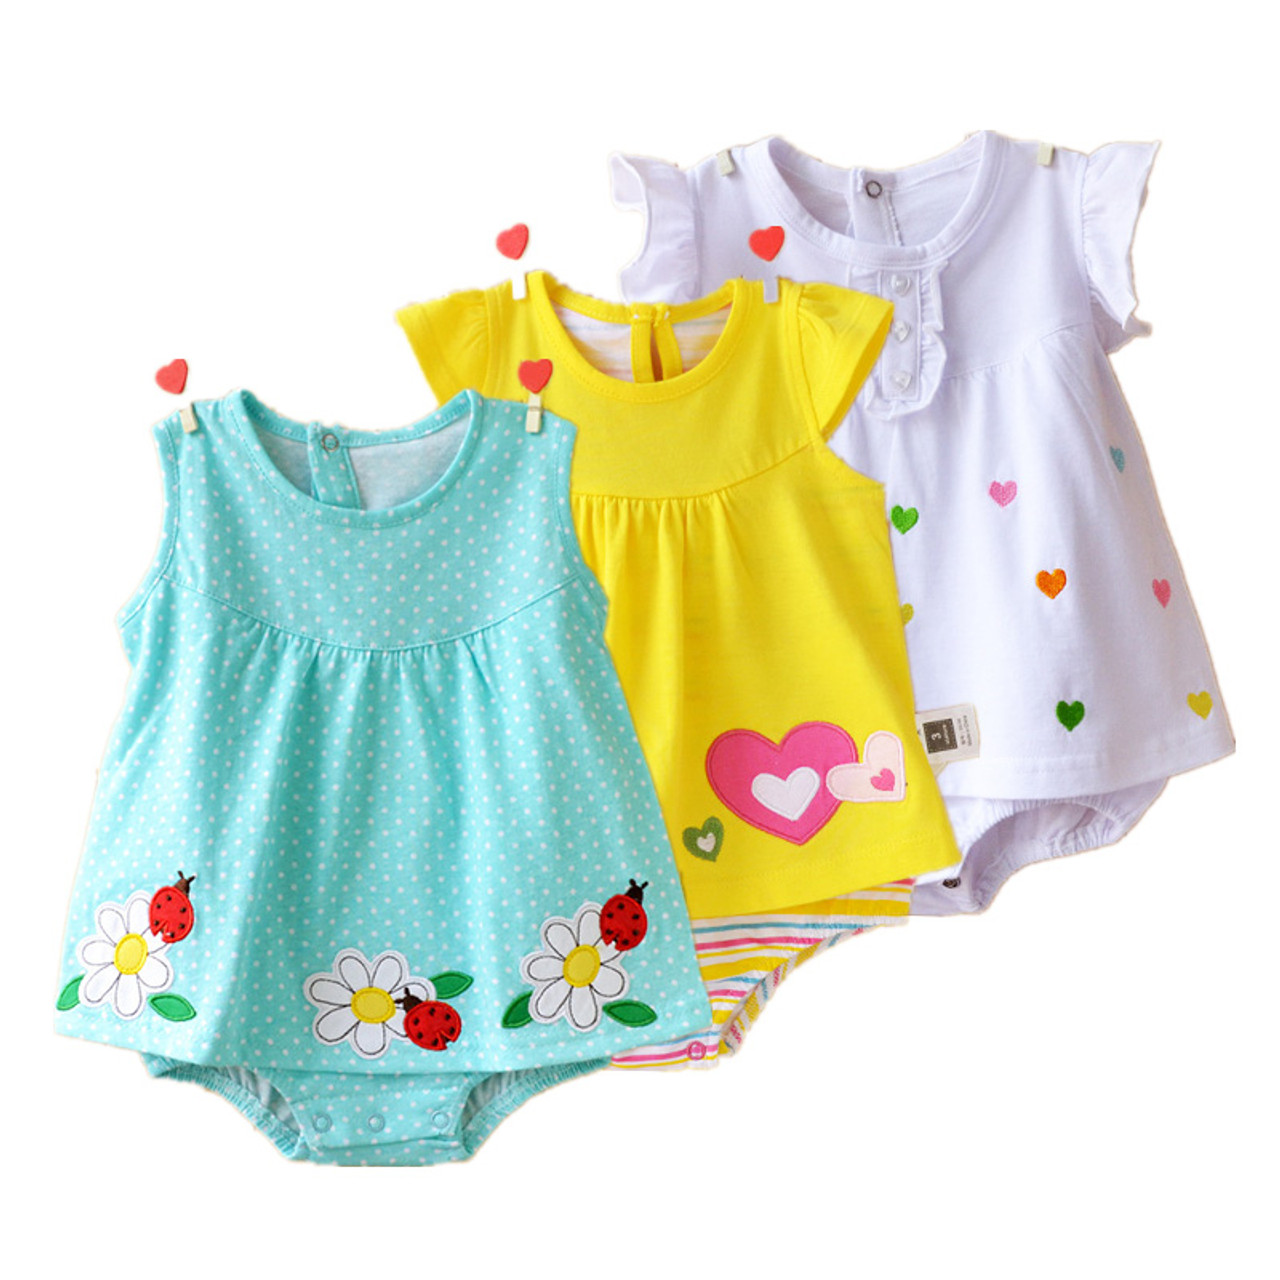 6724c9dc79d84 Baby Girl Rompers Summer 100% Cotton Infant Jumpsuits Roupas Bebes Colorful  Cartoon Newborn Princess Skirt Toddler Girls Clothes